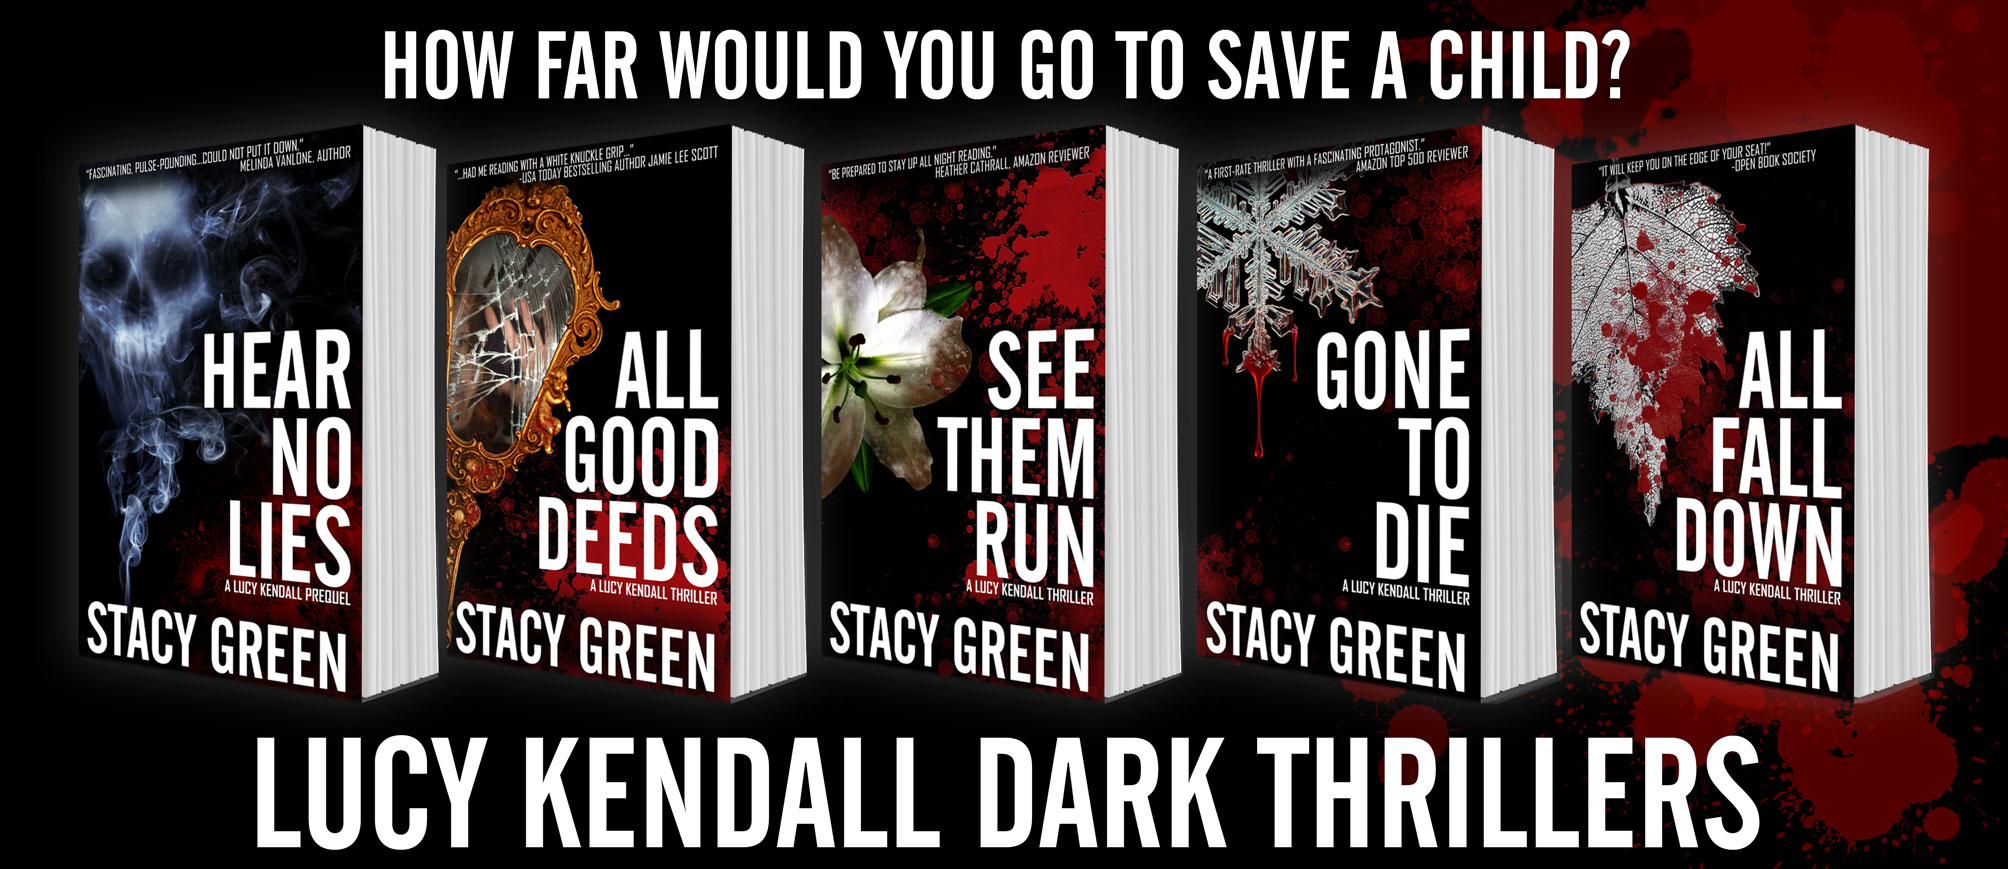 Lucy Kendall Dark Thrillers by Stacy Green